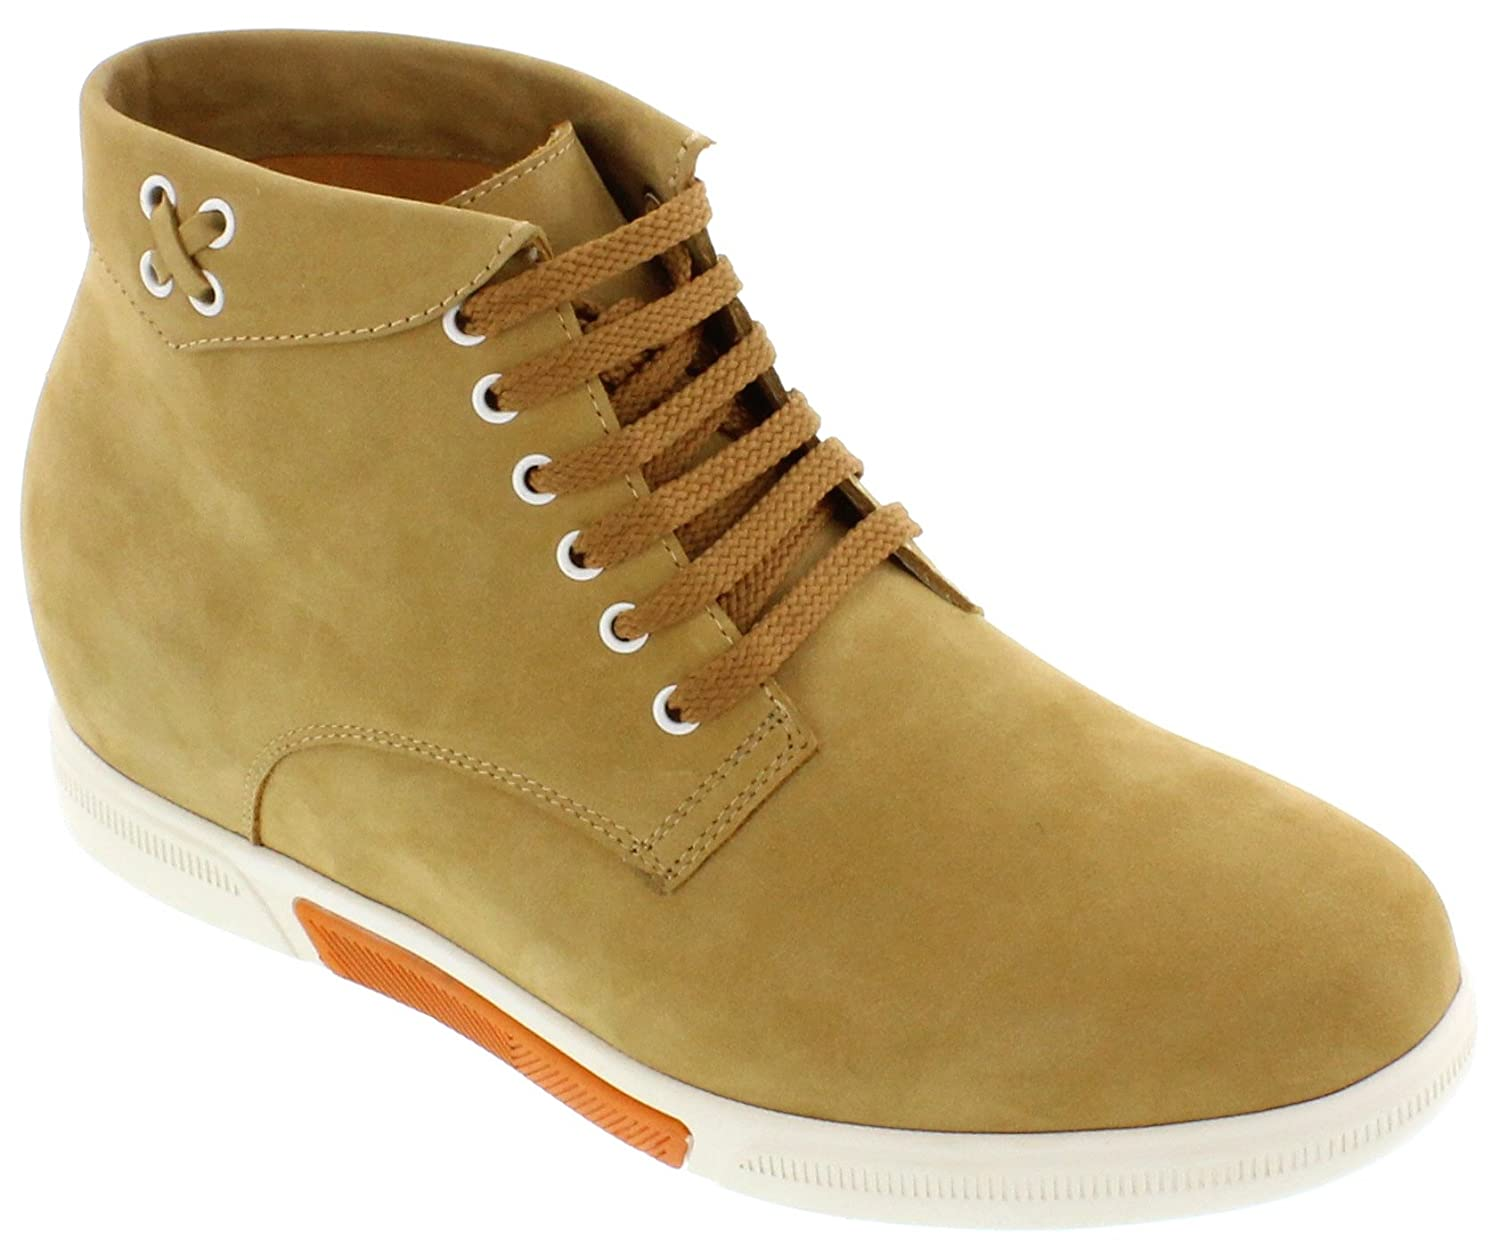 TOTO - D7086 - 3 Inches Taller - Height Increasing Elevator Shoes ...